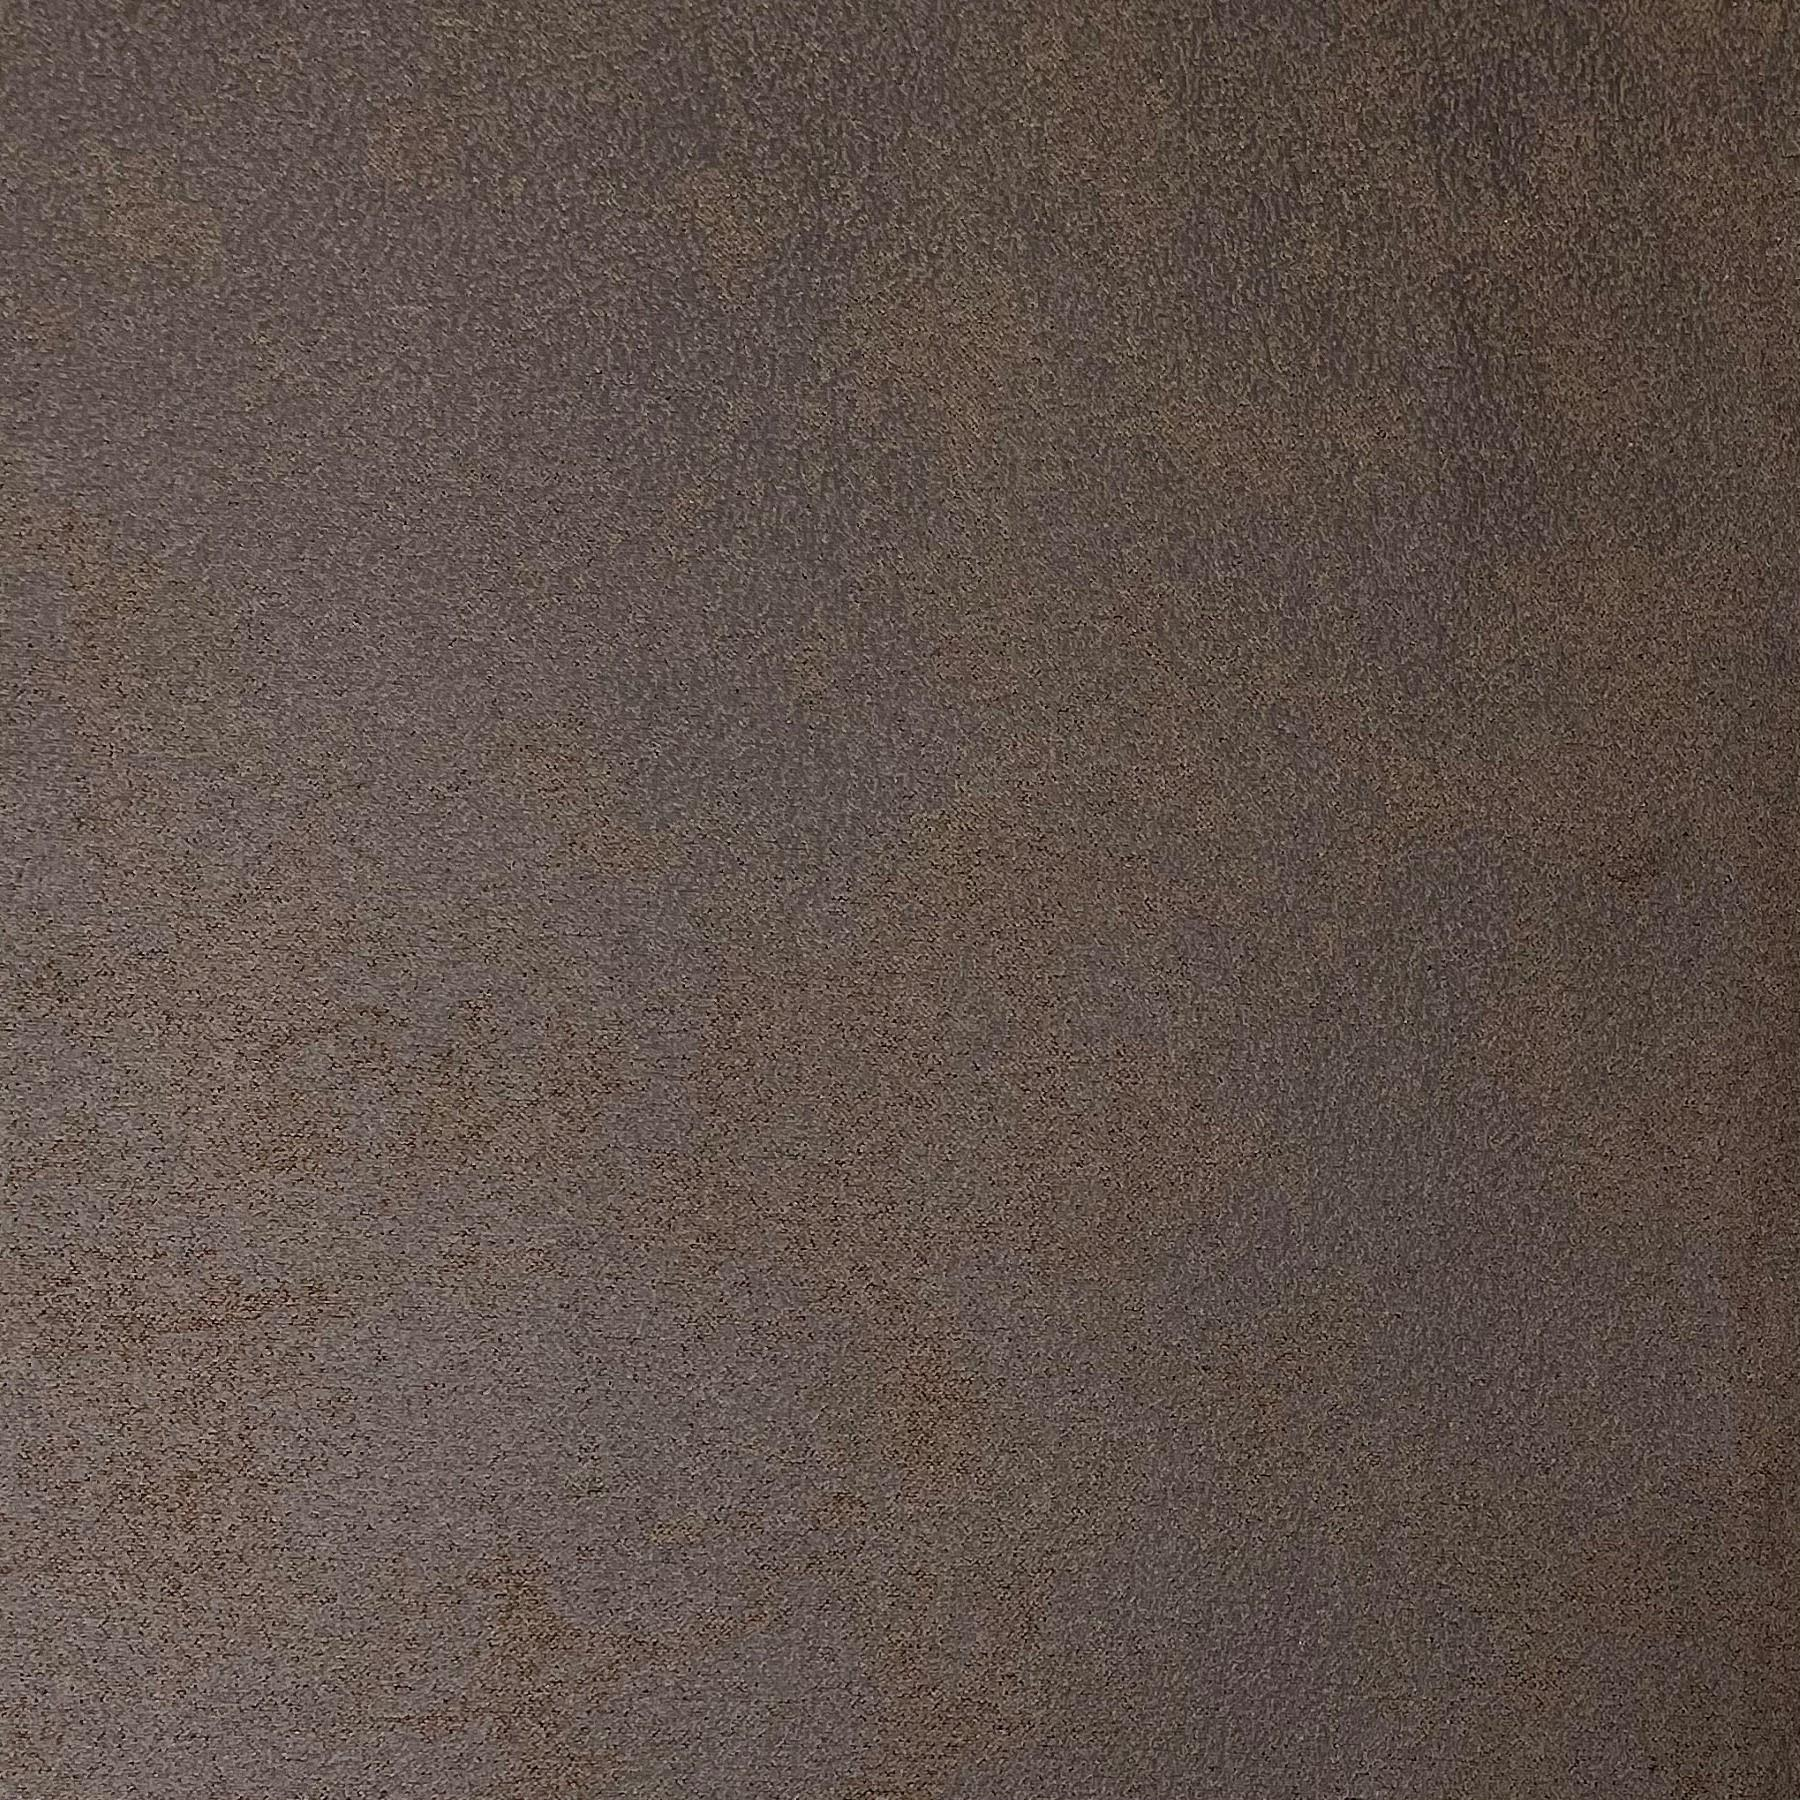 thumbnail 28 - AGED BROWN DISTRESSED ANTIQUED SUEDE FAUX LEATHER LEATHERETTE UPHOLSTERY FABRIC